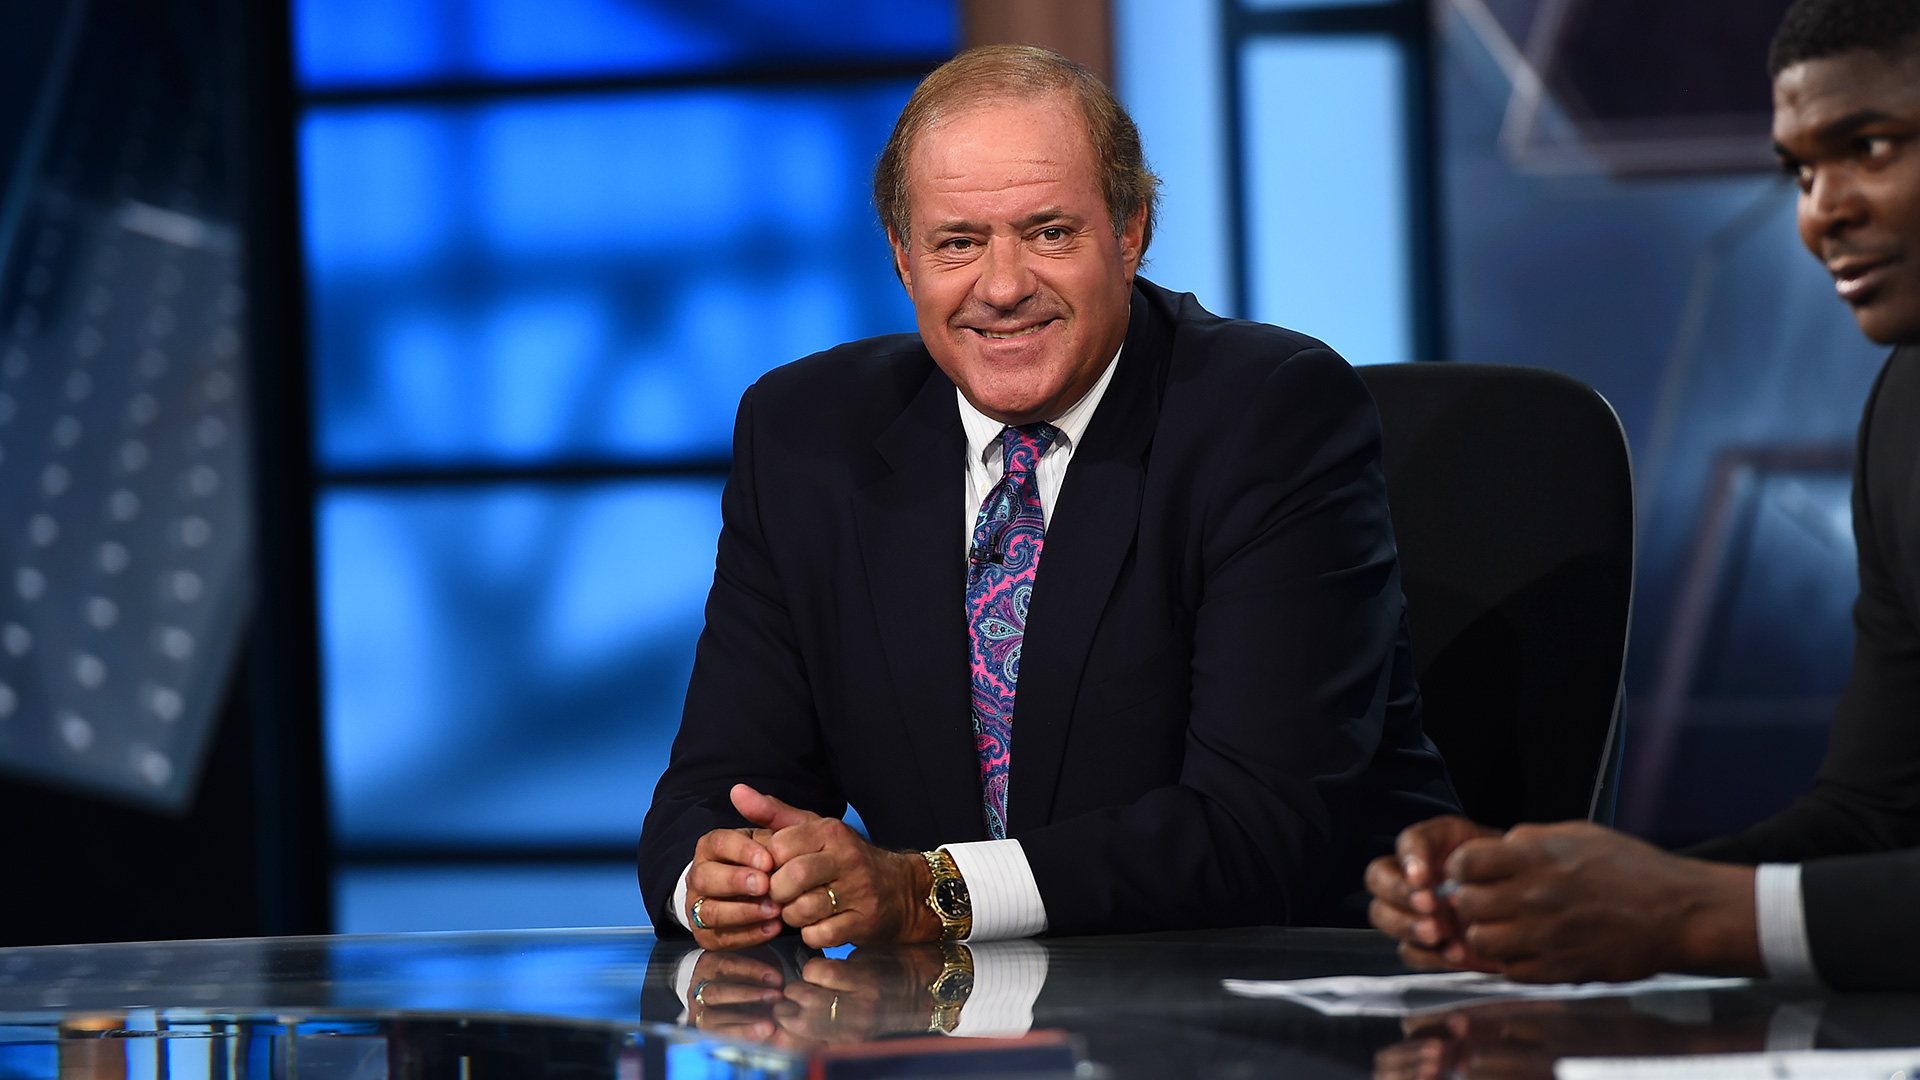 Nfl expected to consider future sunday night playoff games espn - Espn S Chris Berman Opens Up On Losing Nfl Primetime And His Reduced Role Other Sports Sporting News